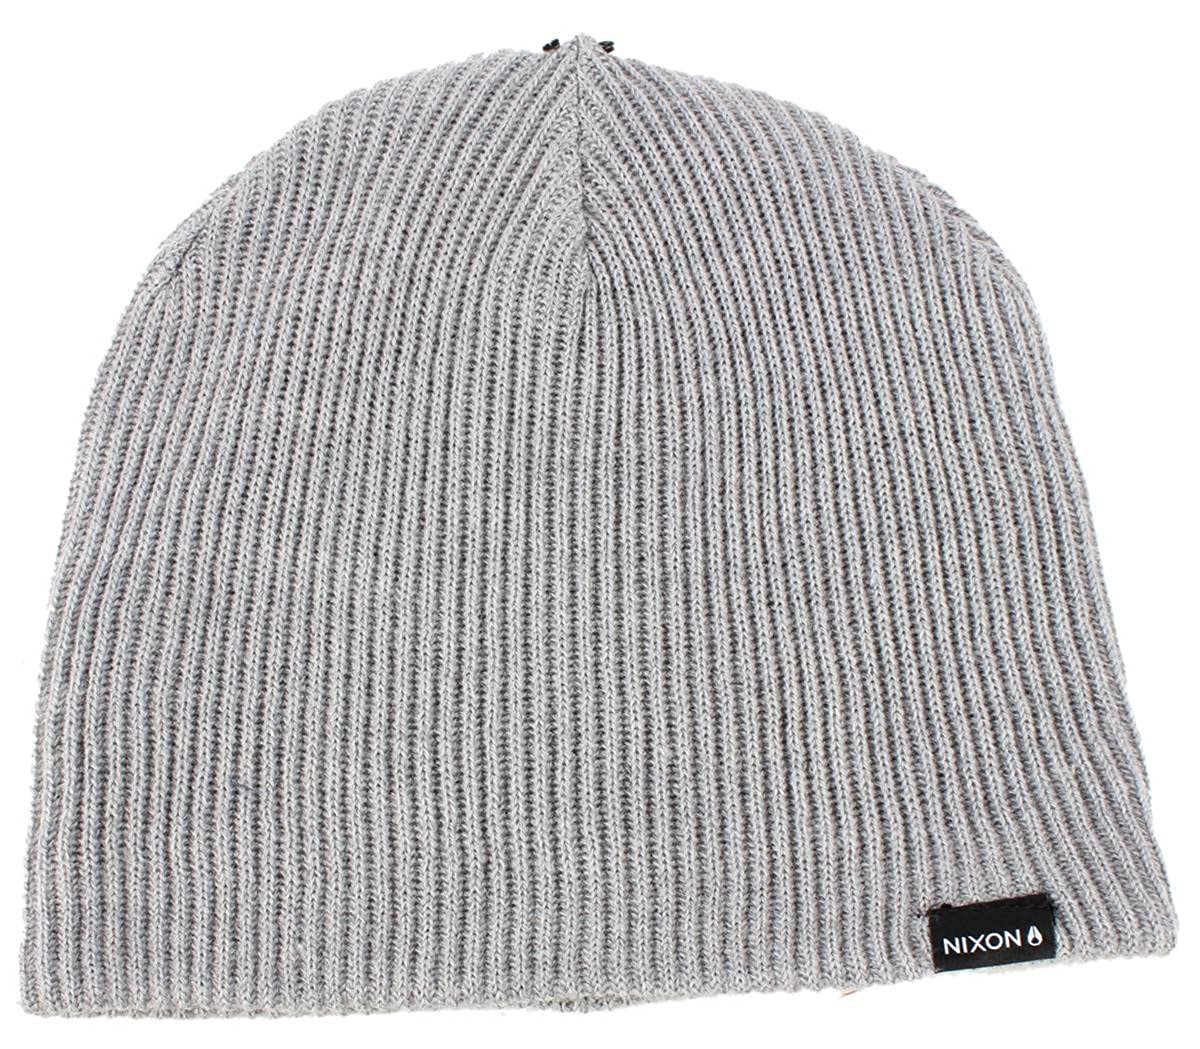 Nixon Compass Beanie Wheat One Size: Amazon.es: Deportes y aire libre